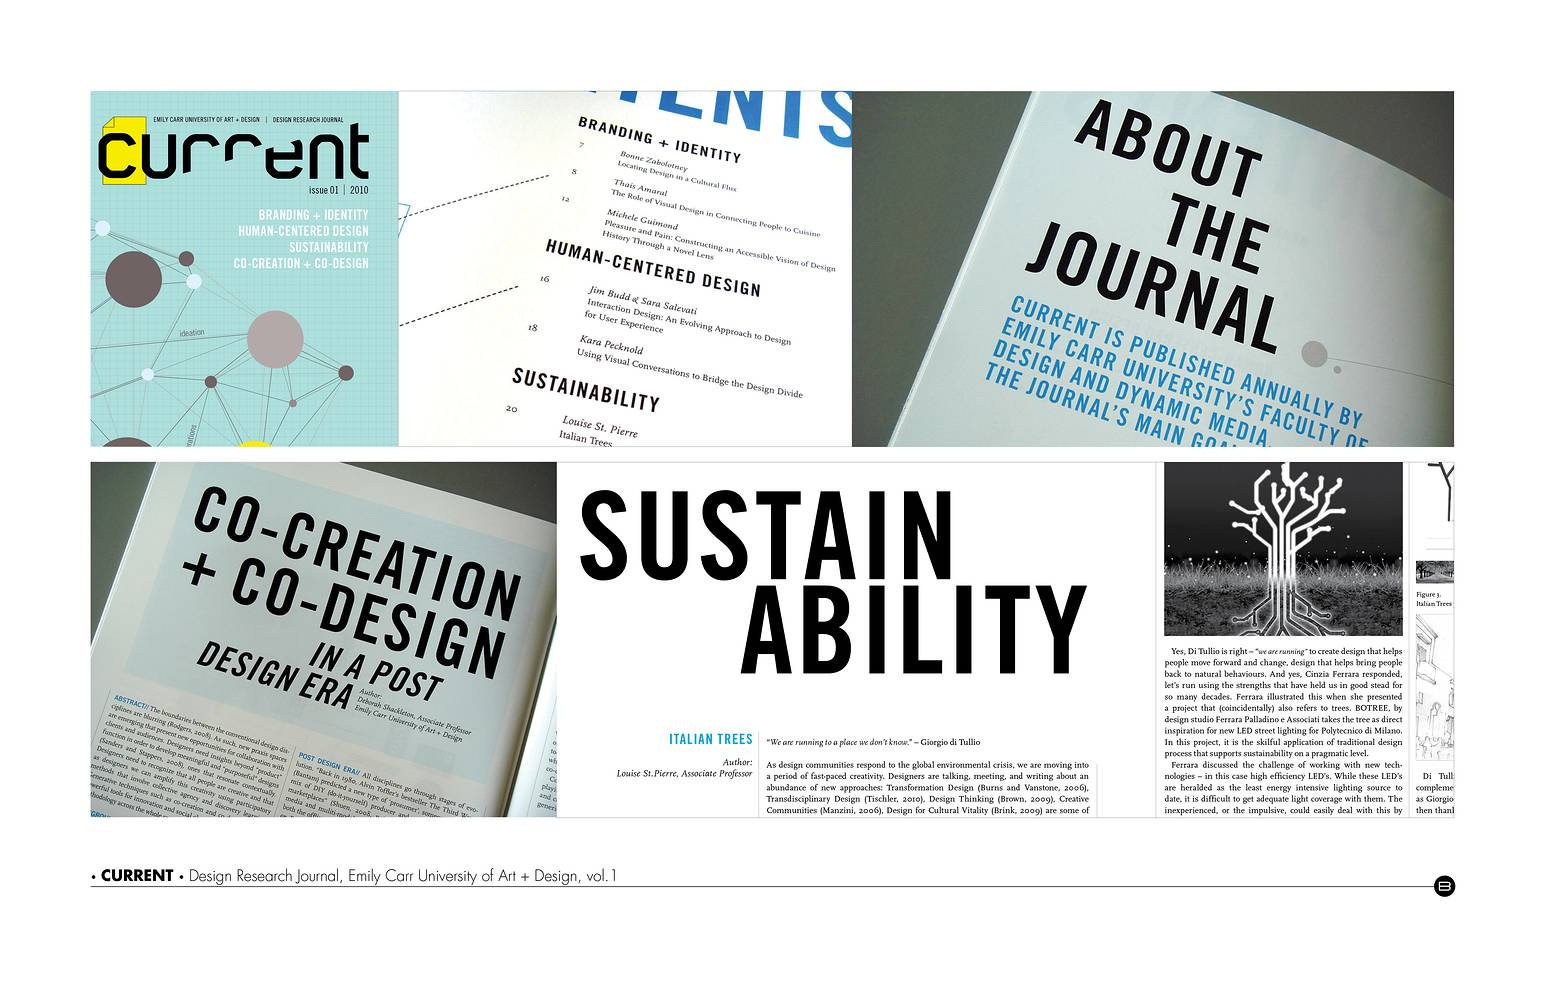 Photography Art Direction, Print + Web Coordinator | CURRENT, Design Research Journal, ECU, vol.1 by Brooke Allen